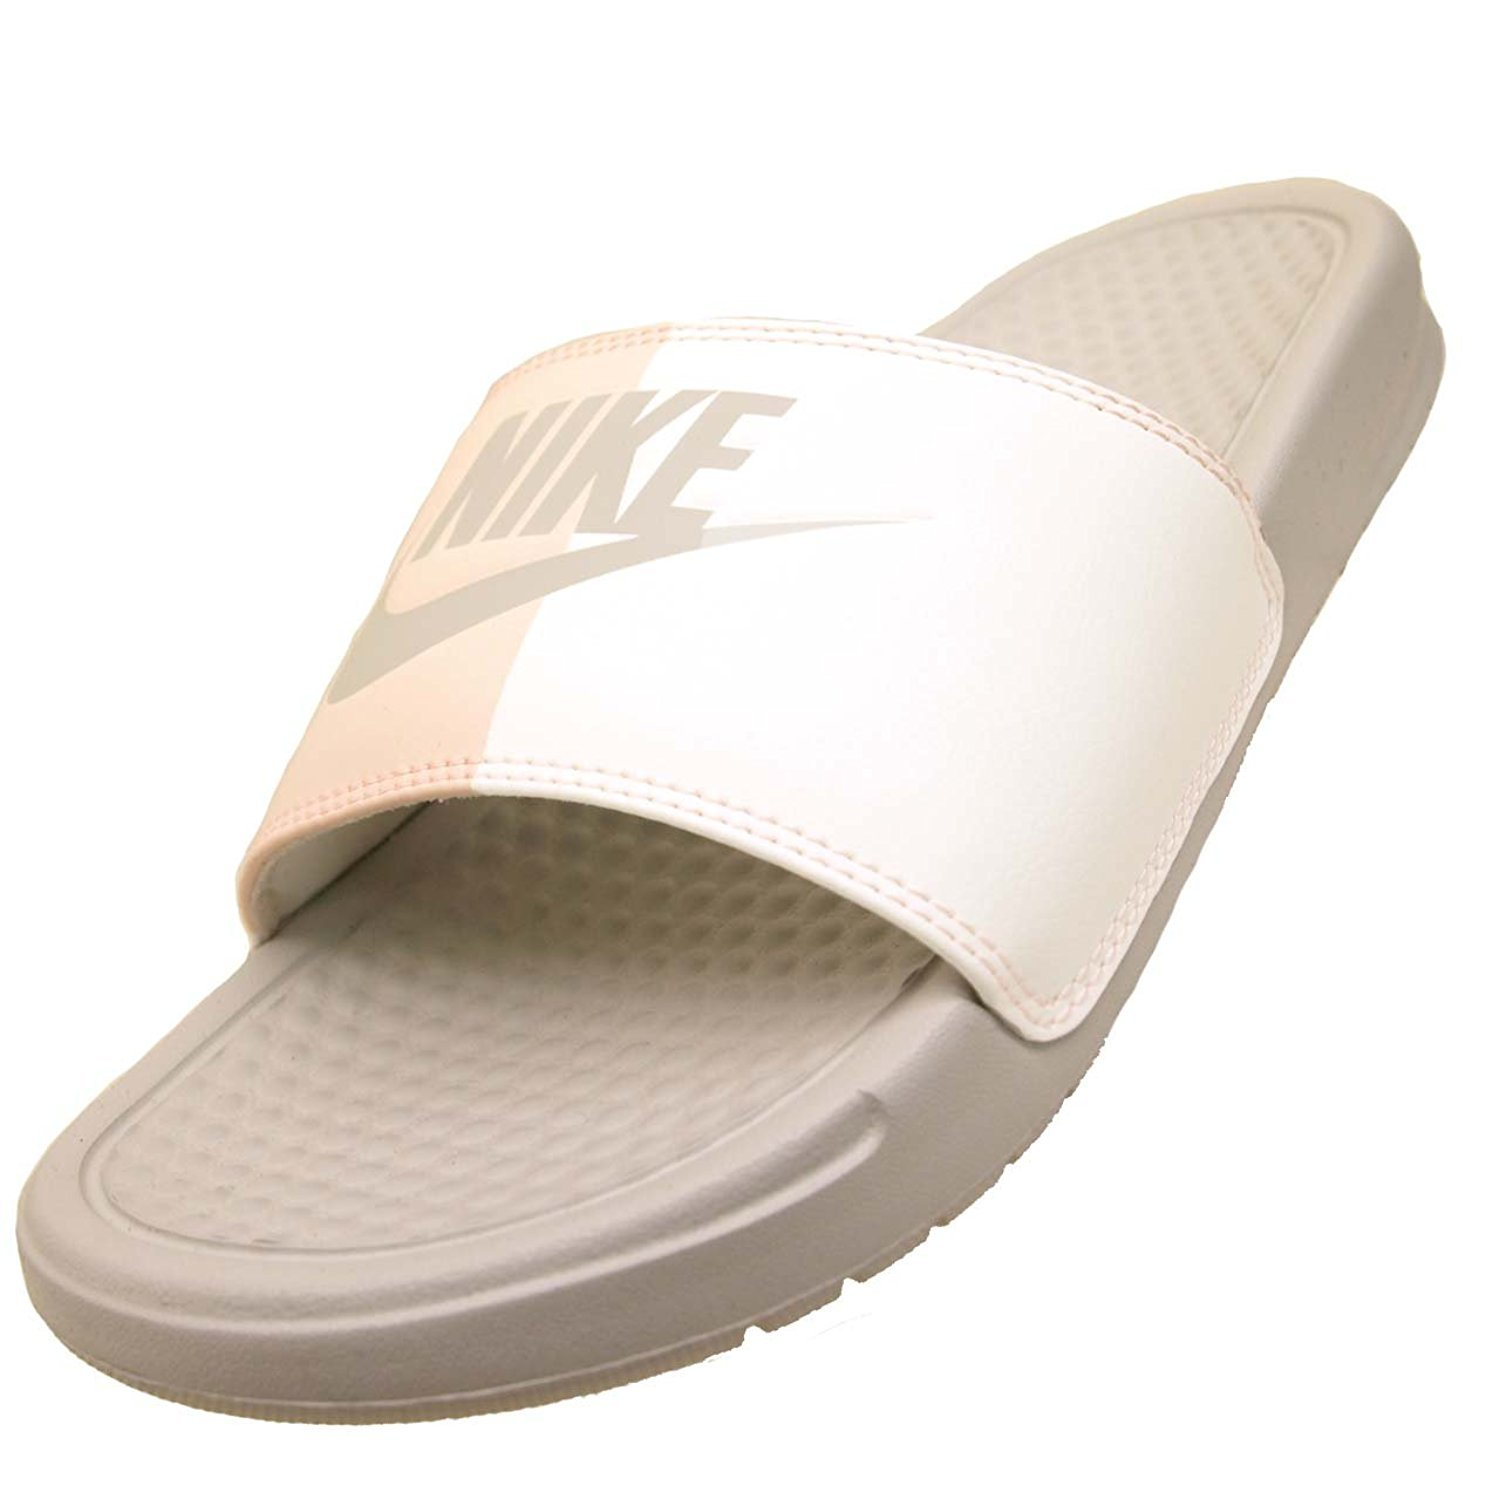 the best attitude c79bf ee218 Galleon - Nike Women s Benassi JDI Sandal 343881 005 (Light Bone Sai, 10  B(M) US)